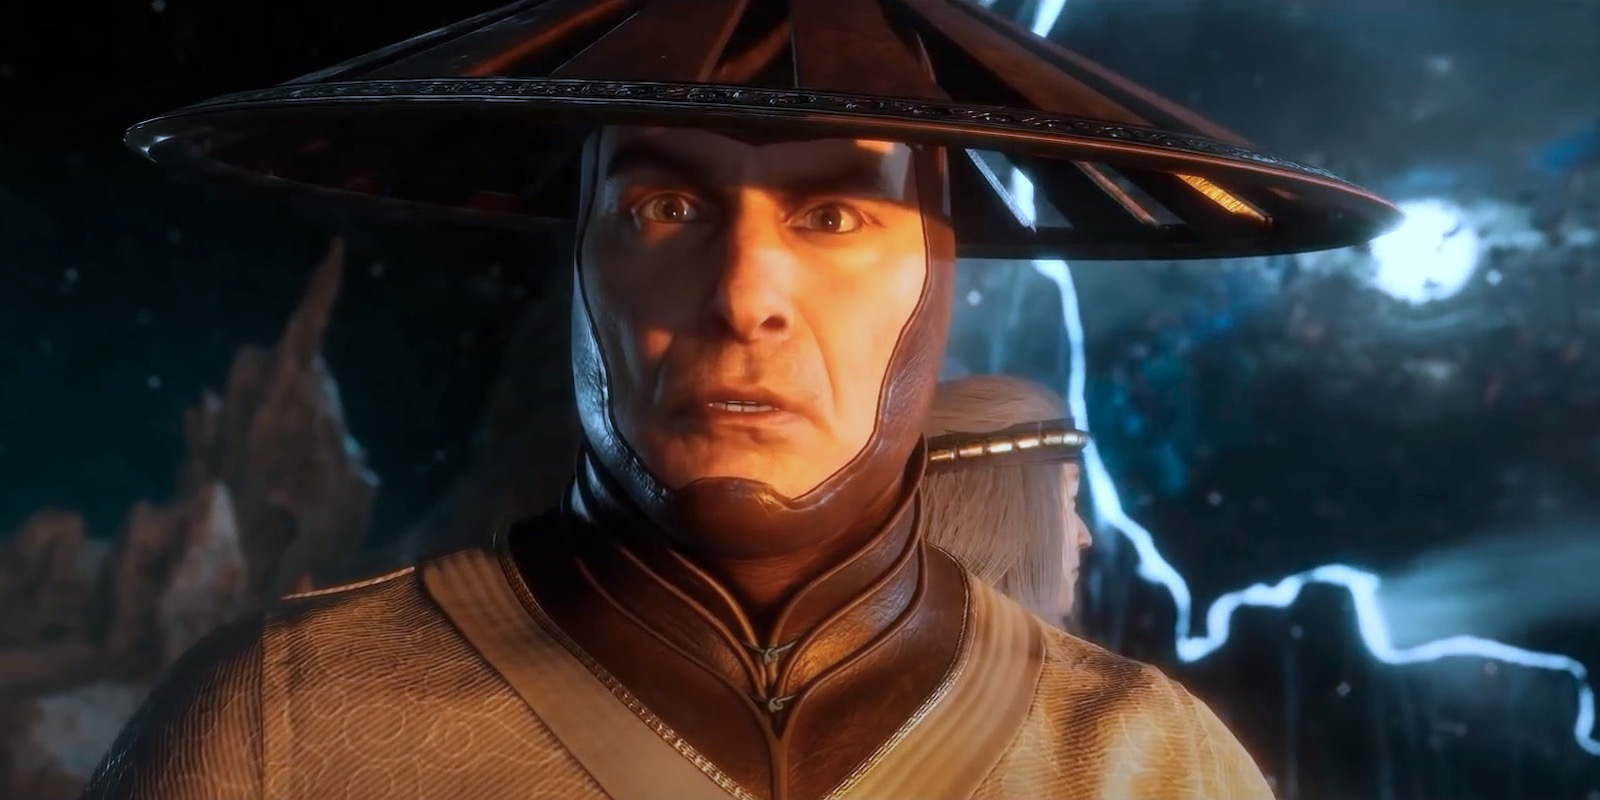 Nobody Expected The Second Round Mortal Kombat 11 With Feature Dlc Xiaomist